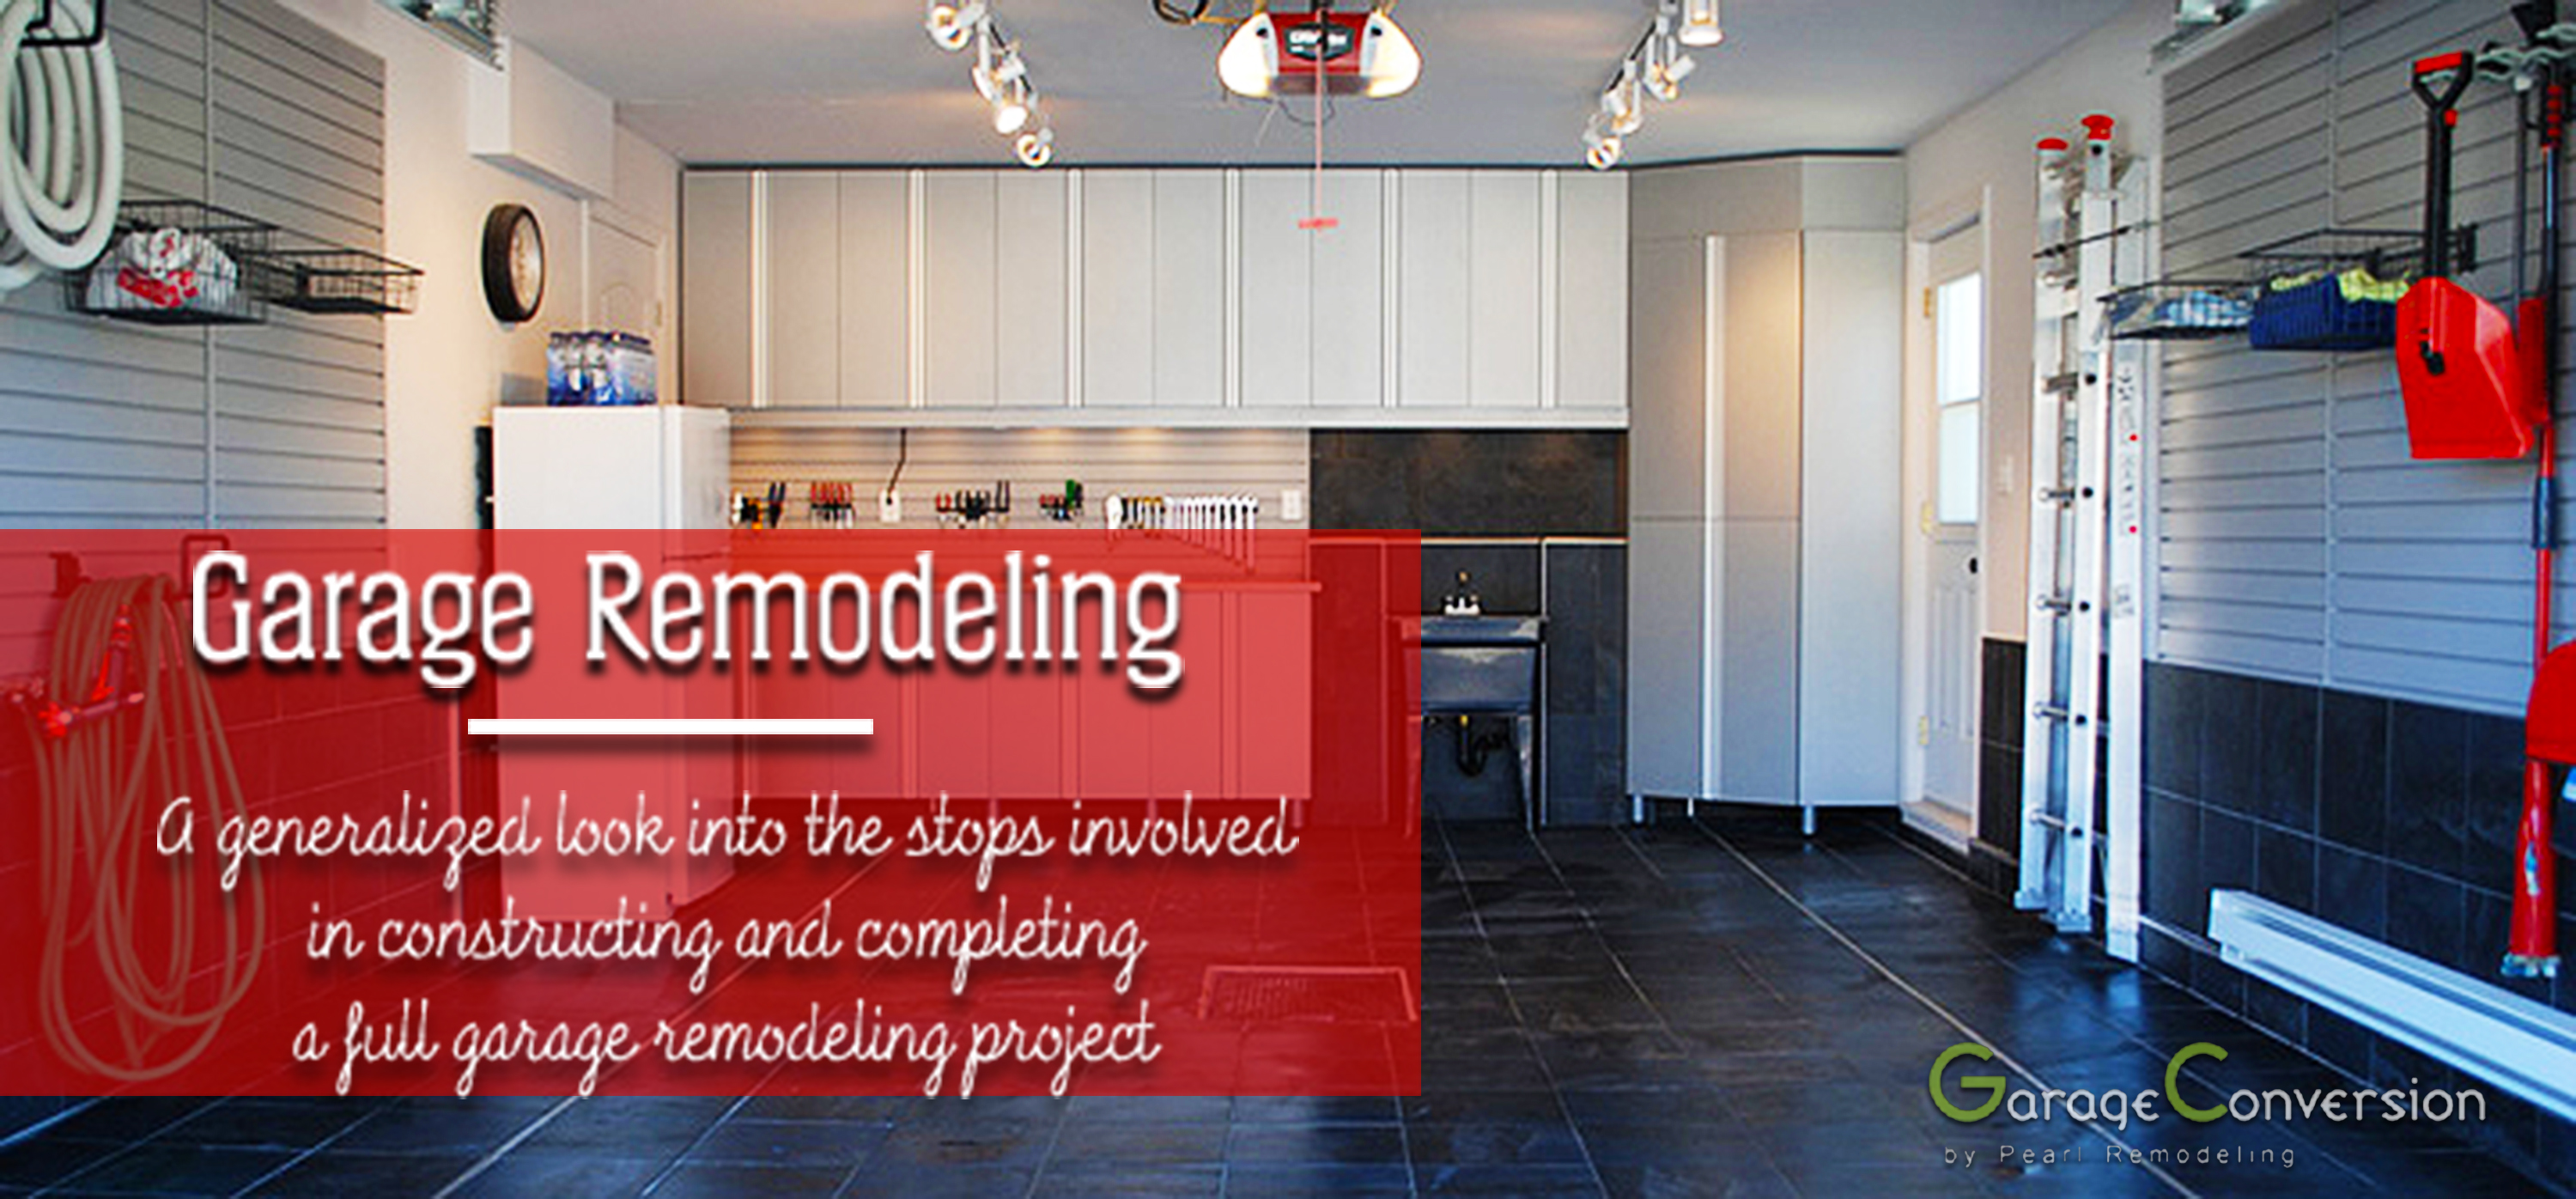 Wondering What A Garage Remodel Might Look Like For You Here Is Generalized Idea